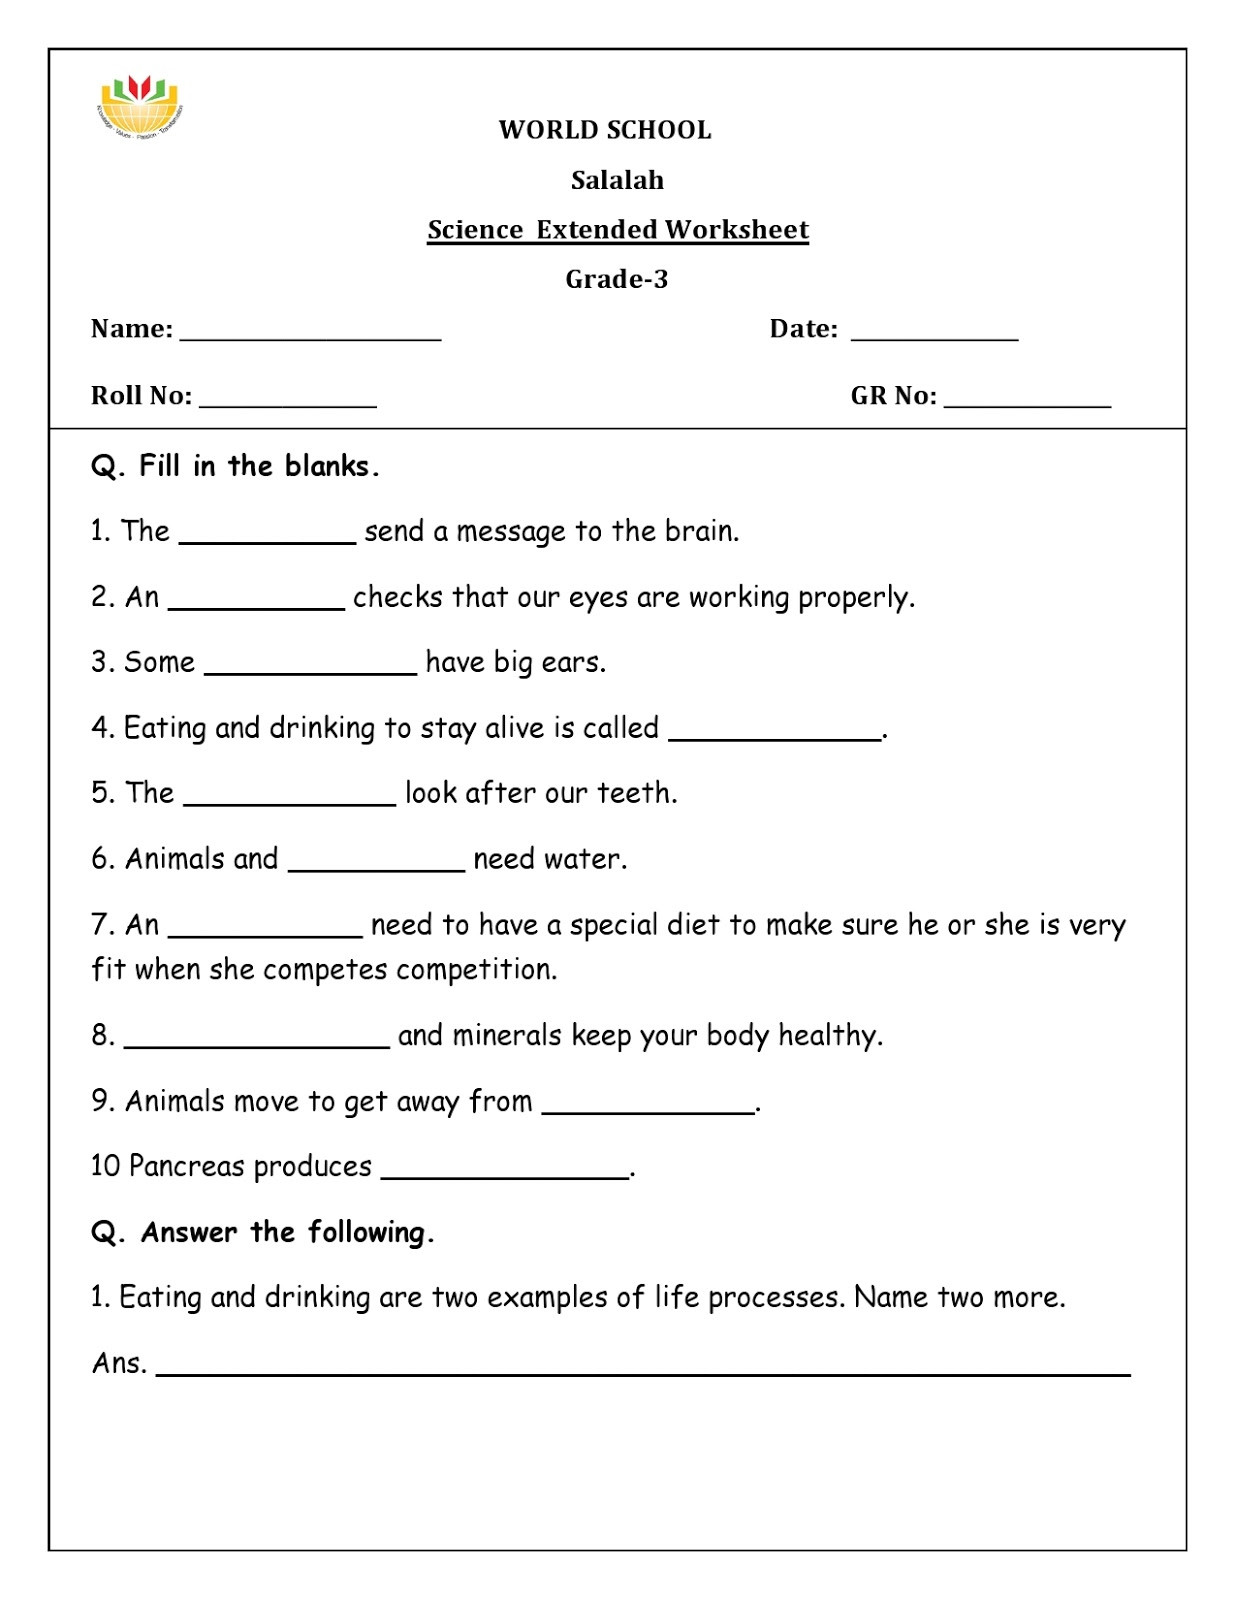 Internet Safety Worksheets Printable Science Worksheets for Grade to Educations Math Games